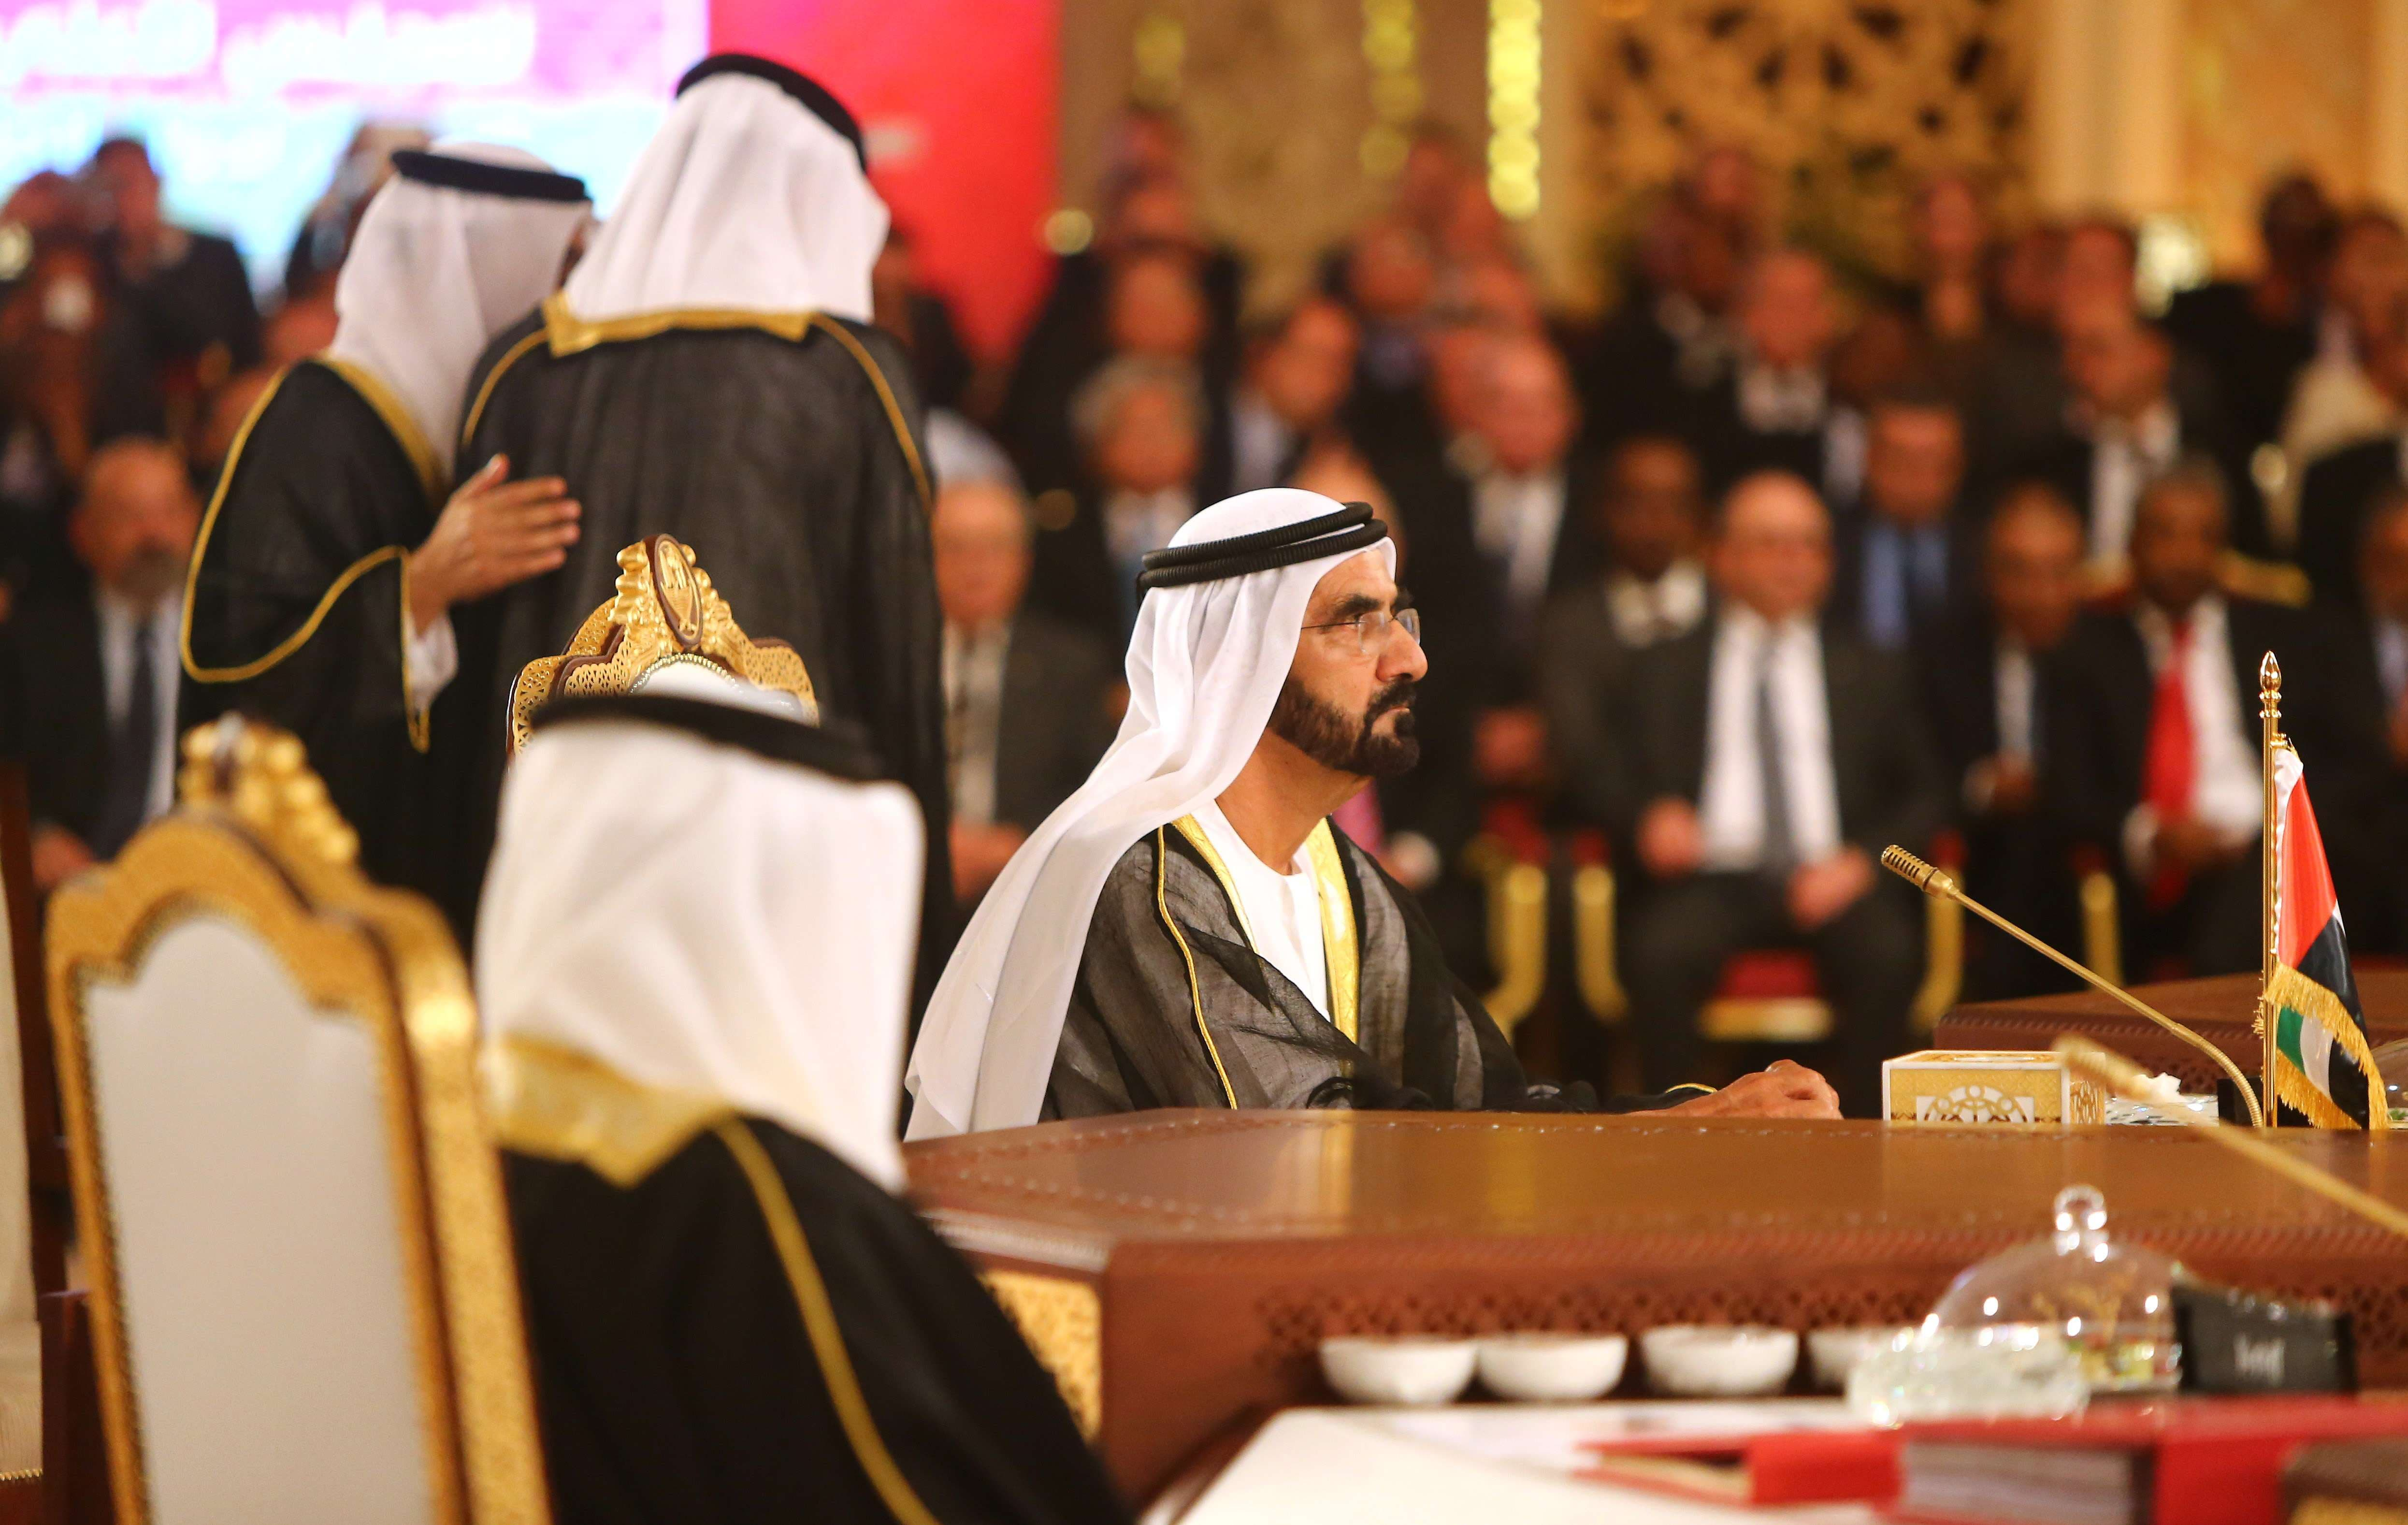 Sheikh Mohammed Bin Rashid al-Maktoum (C), ruler of Dubai looks on during the Gulf Cooperation Council (GCC) summit in Doha on December 9, 2014. (AFP)